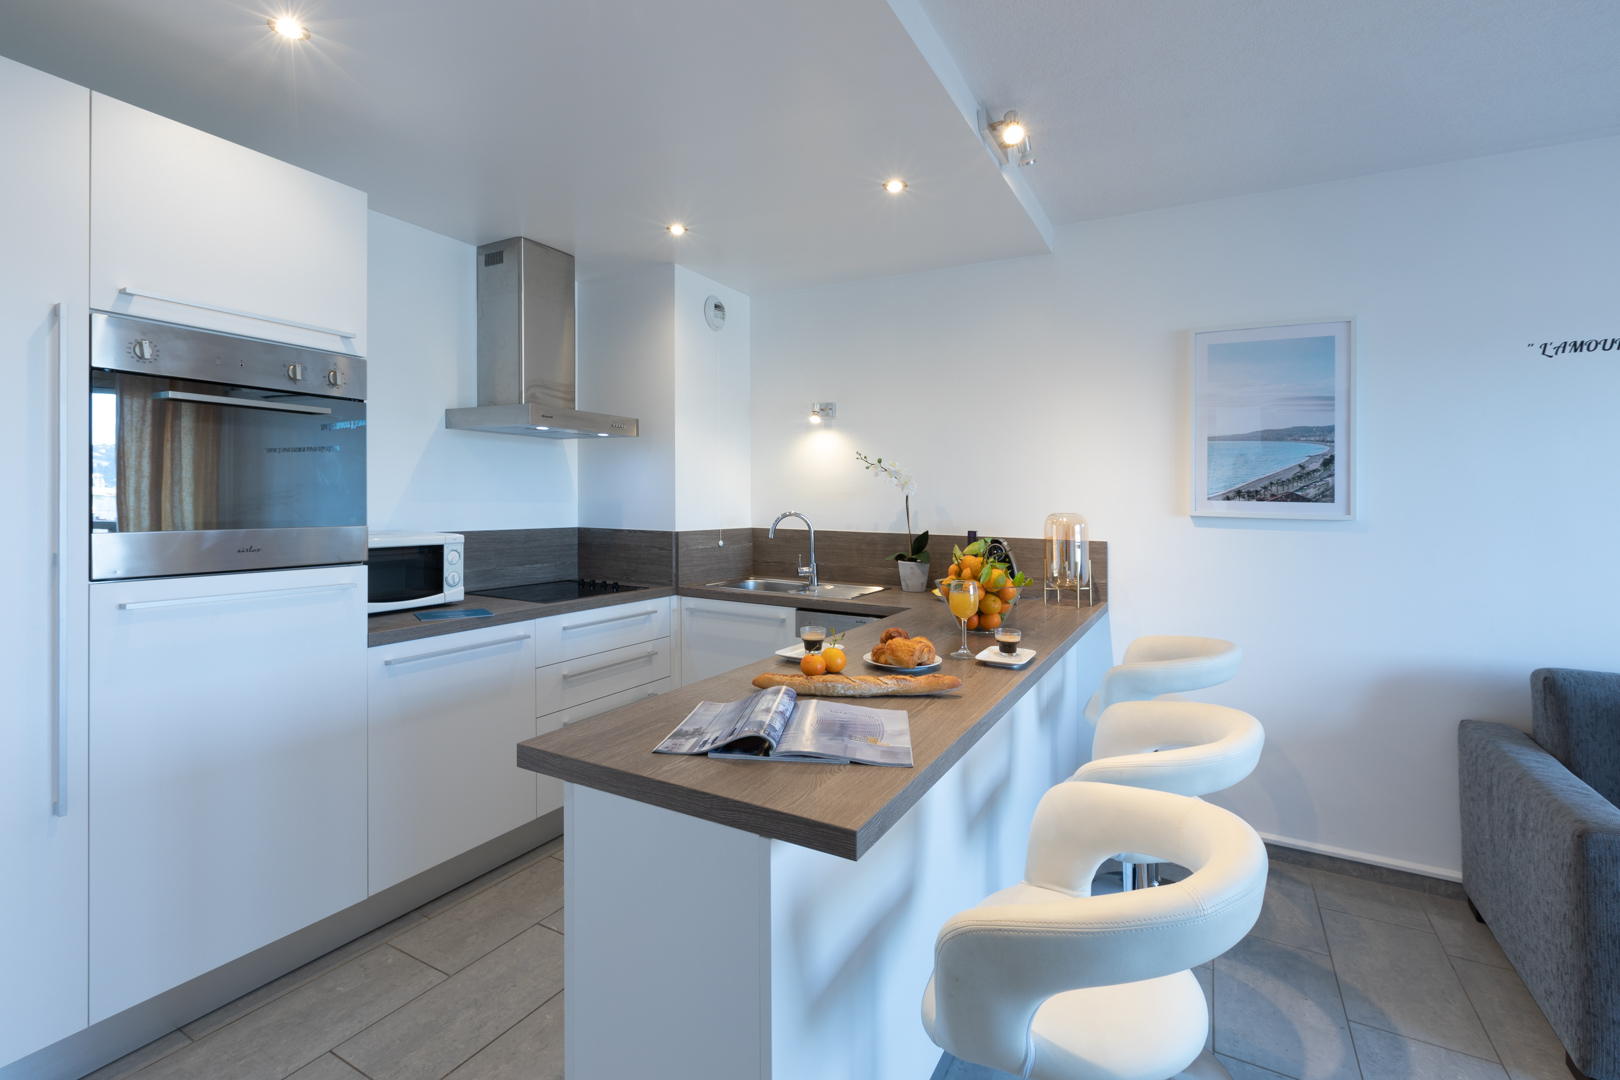 Kitchen at Sky View Terrace Apartment